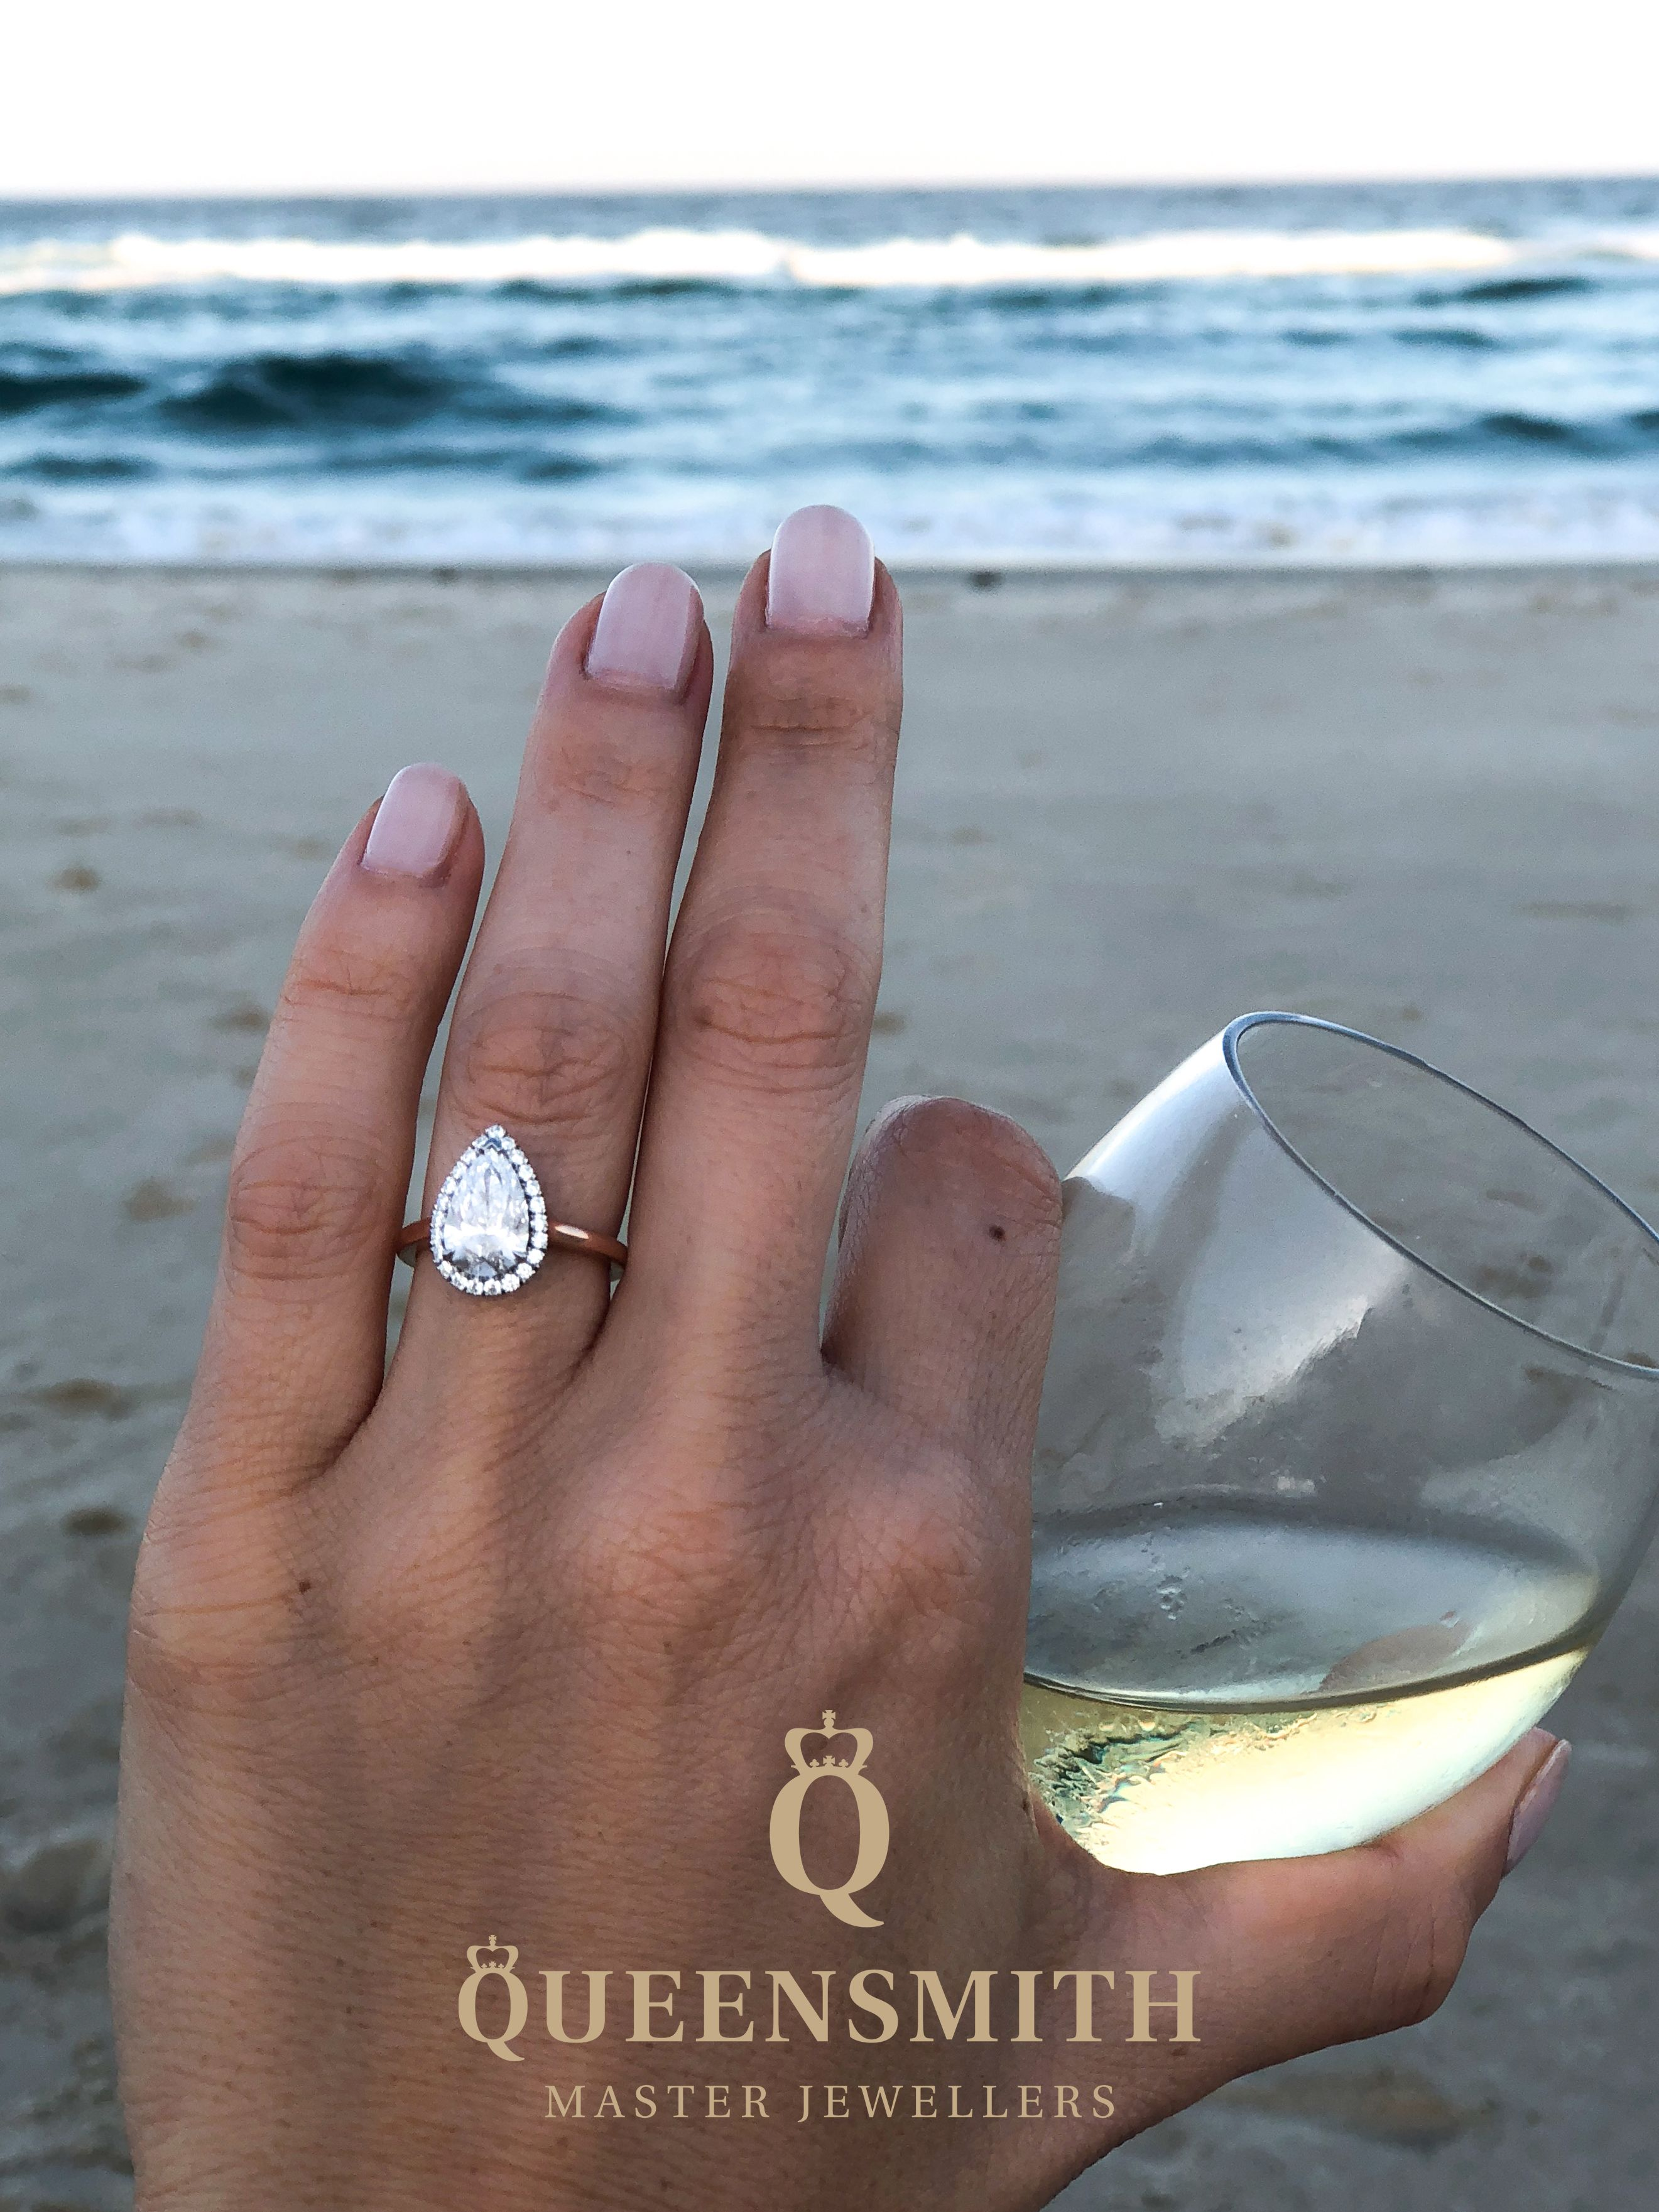 Find The Perfect Engagement Ring With Queensmith Master Jewellers Based In Hatto Pear Engagement Ring Halo Pear Diamond Engagement Ring Pear Engagement Ring